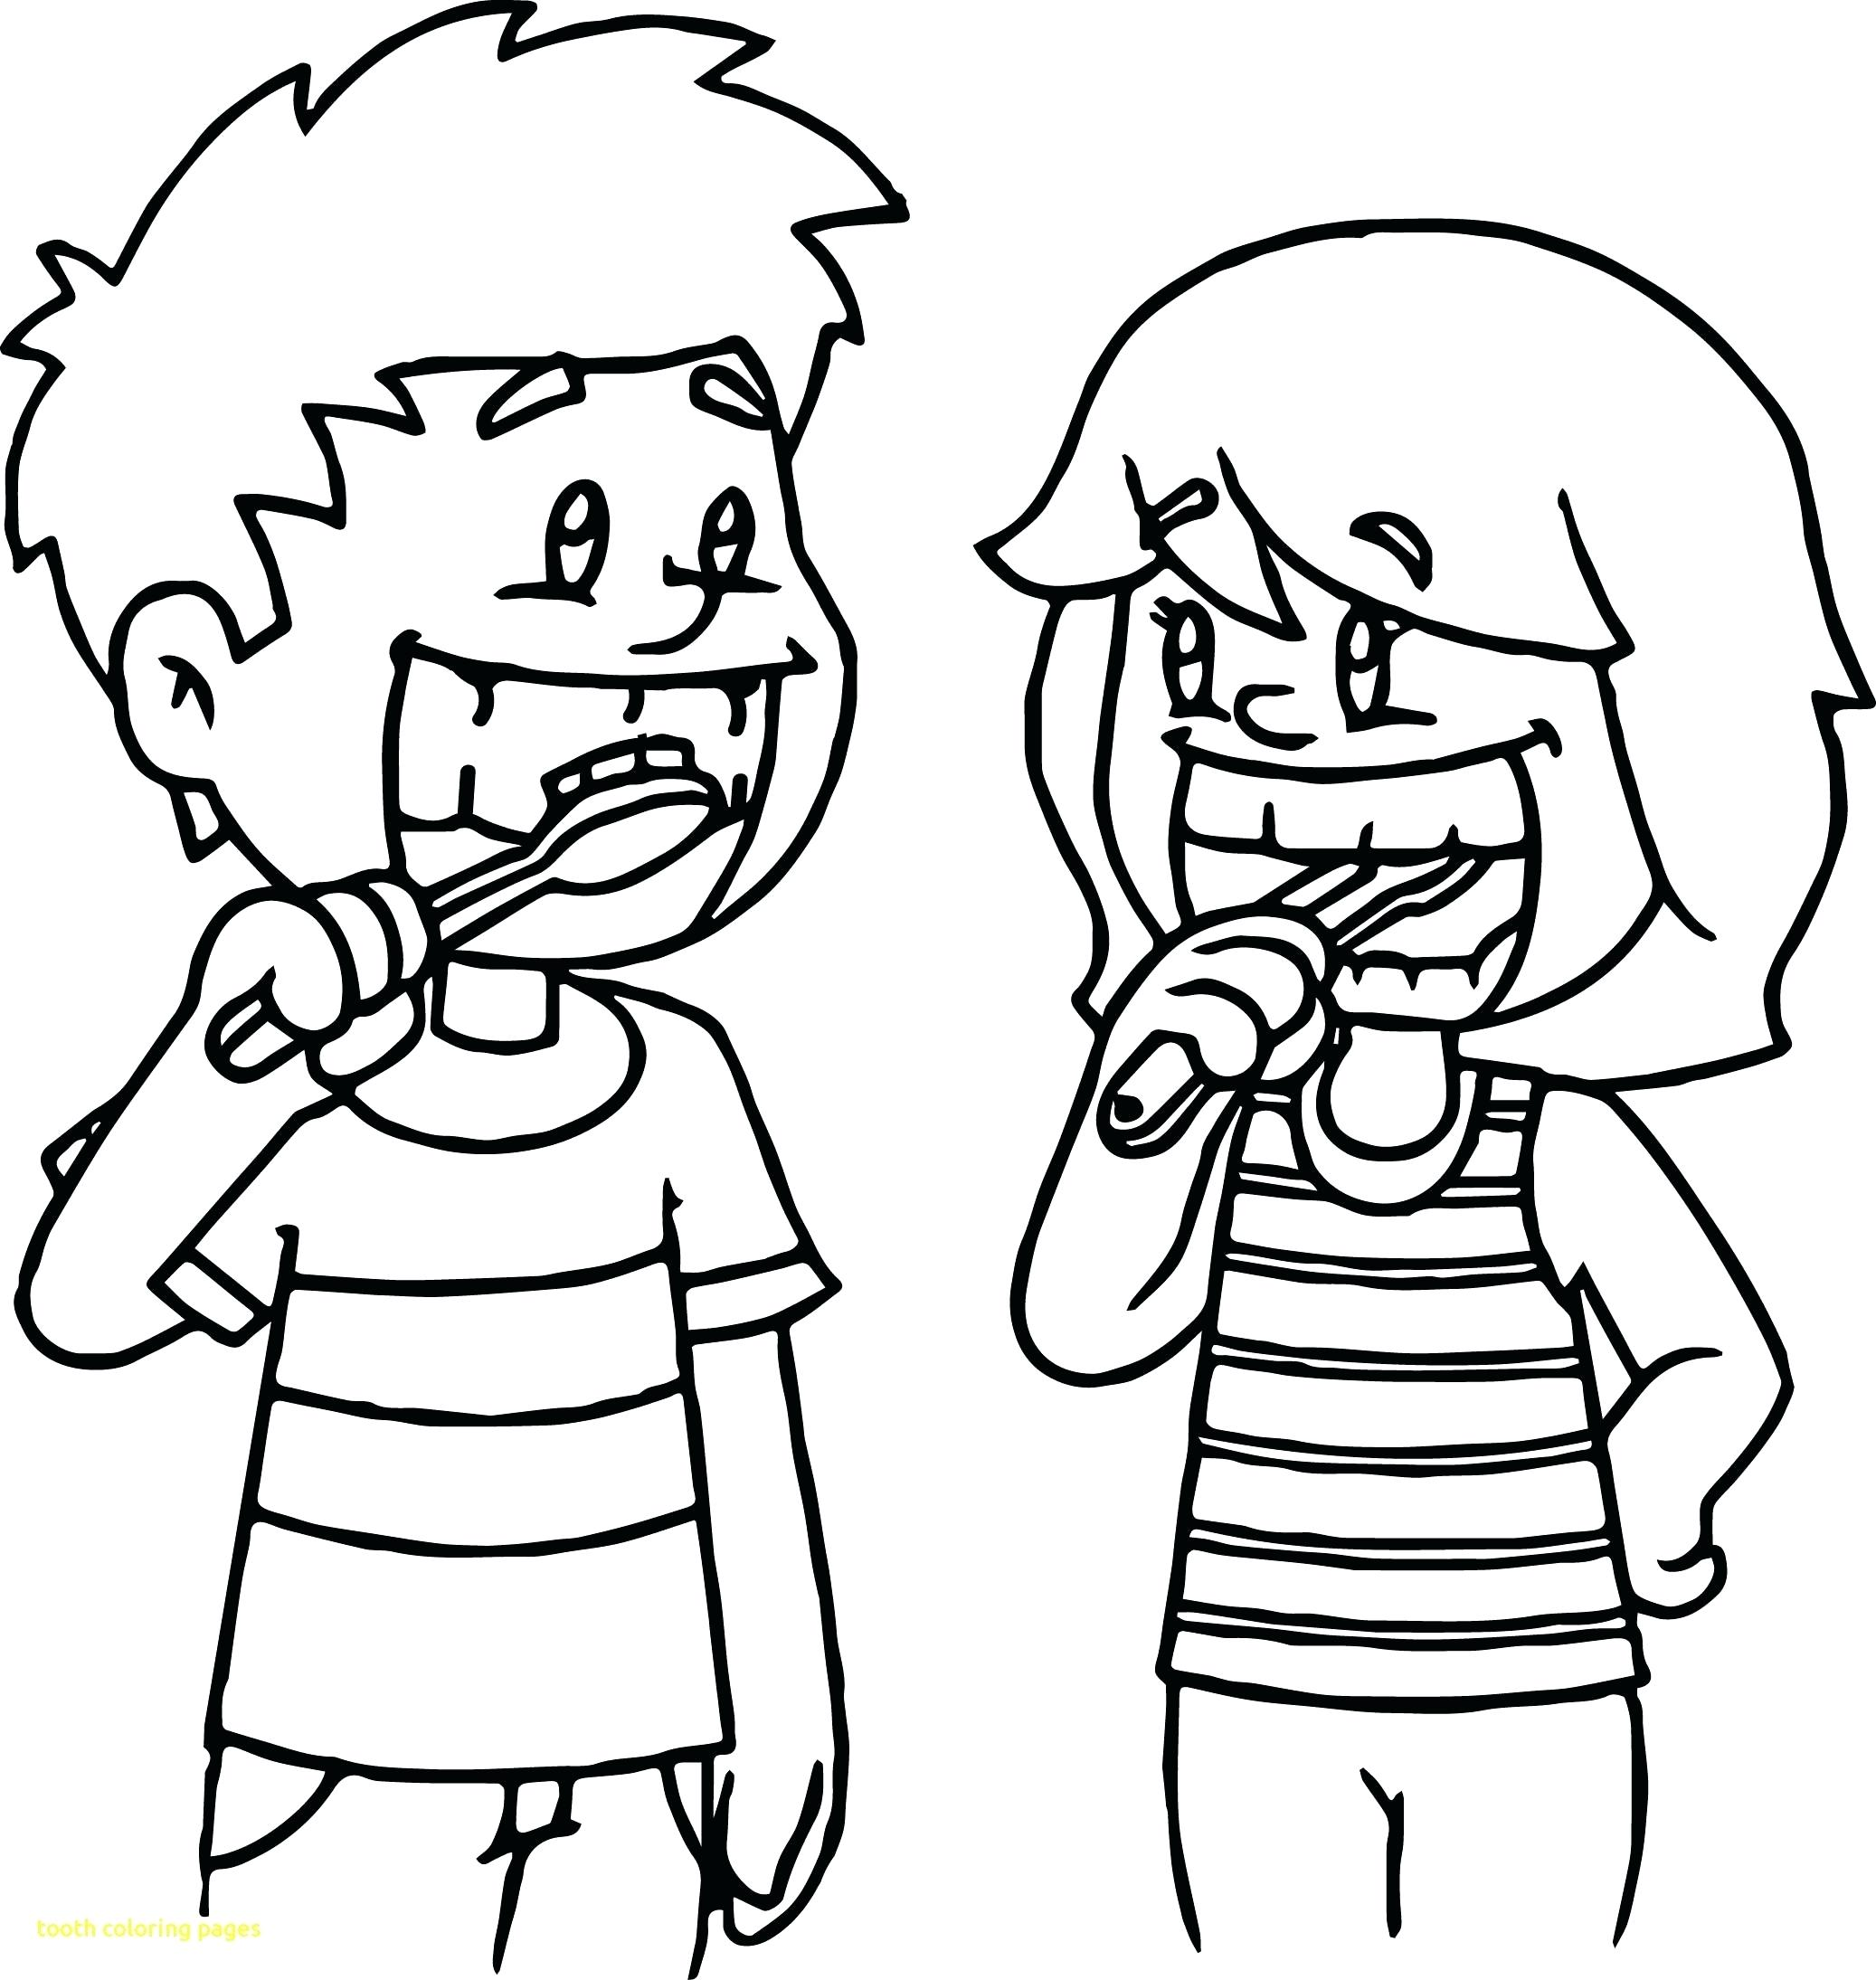 Brushing teeth clipart colouring page.